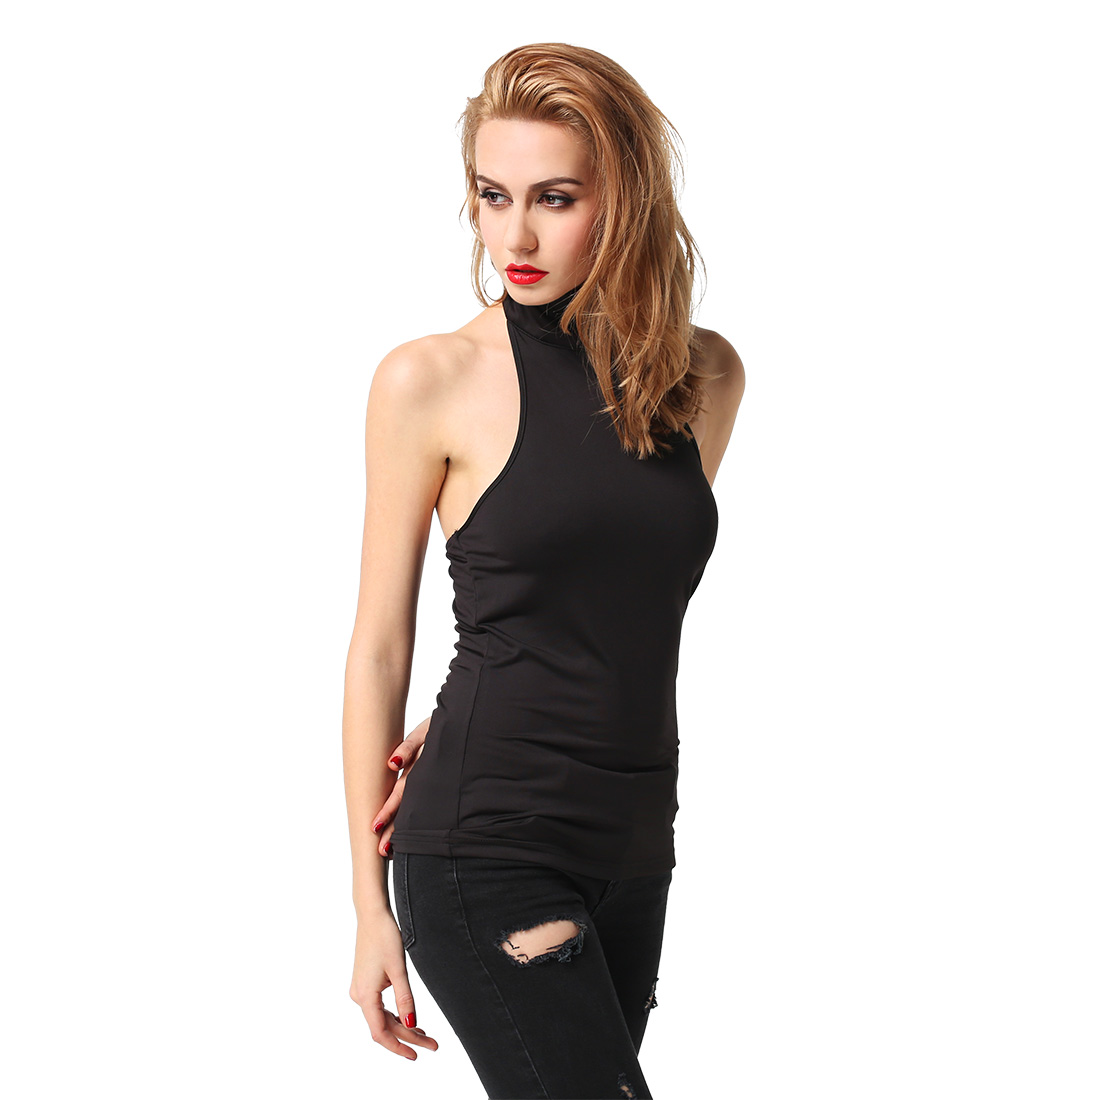 Going out clothing for women